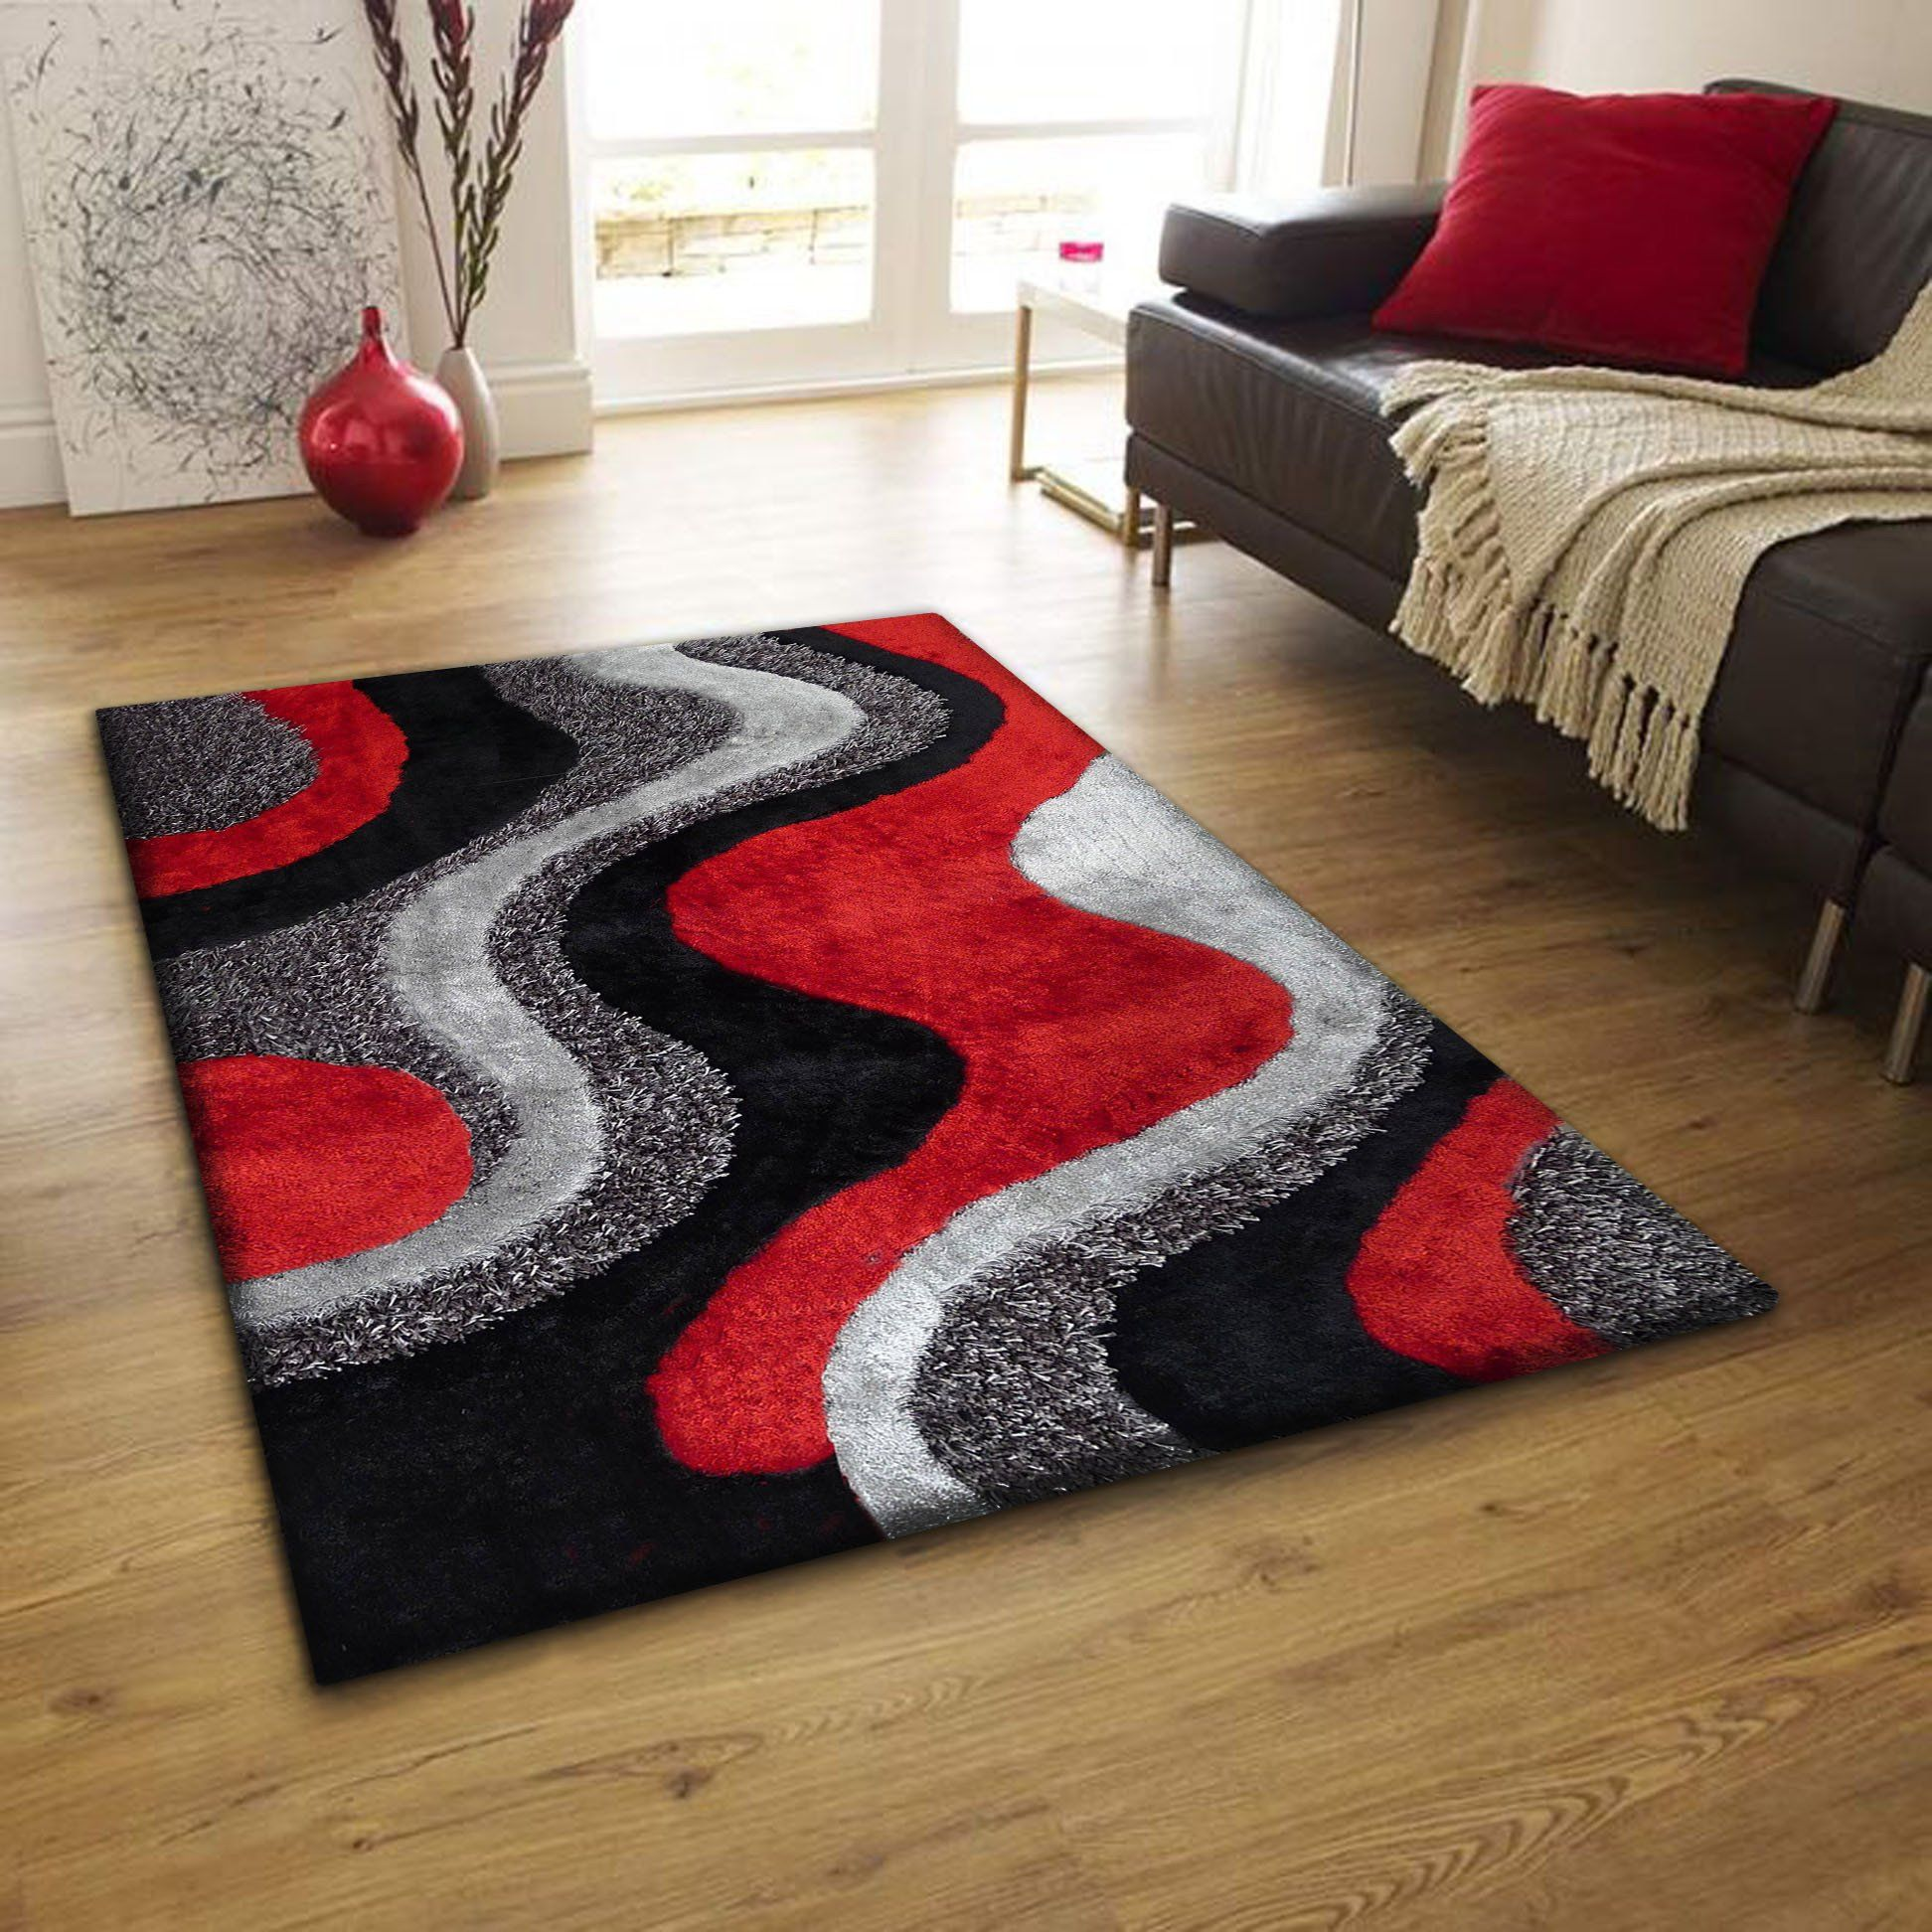 Black Grey With Red Shag Area Rug In 2019 Living Room Rugs Room